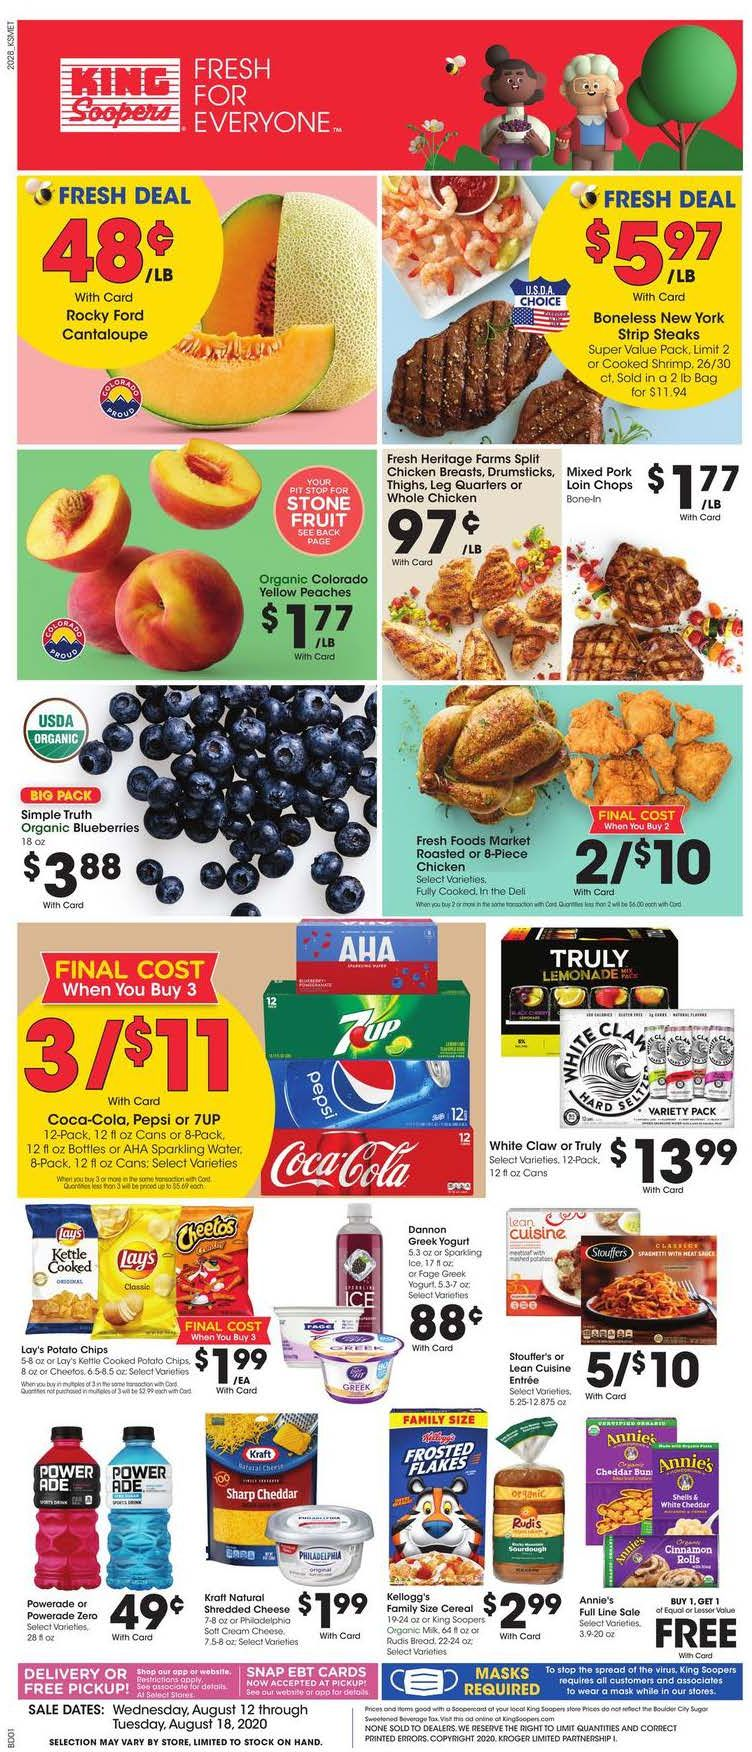 king soopers ad aug 12 2020